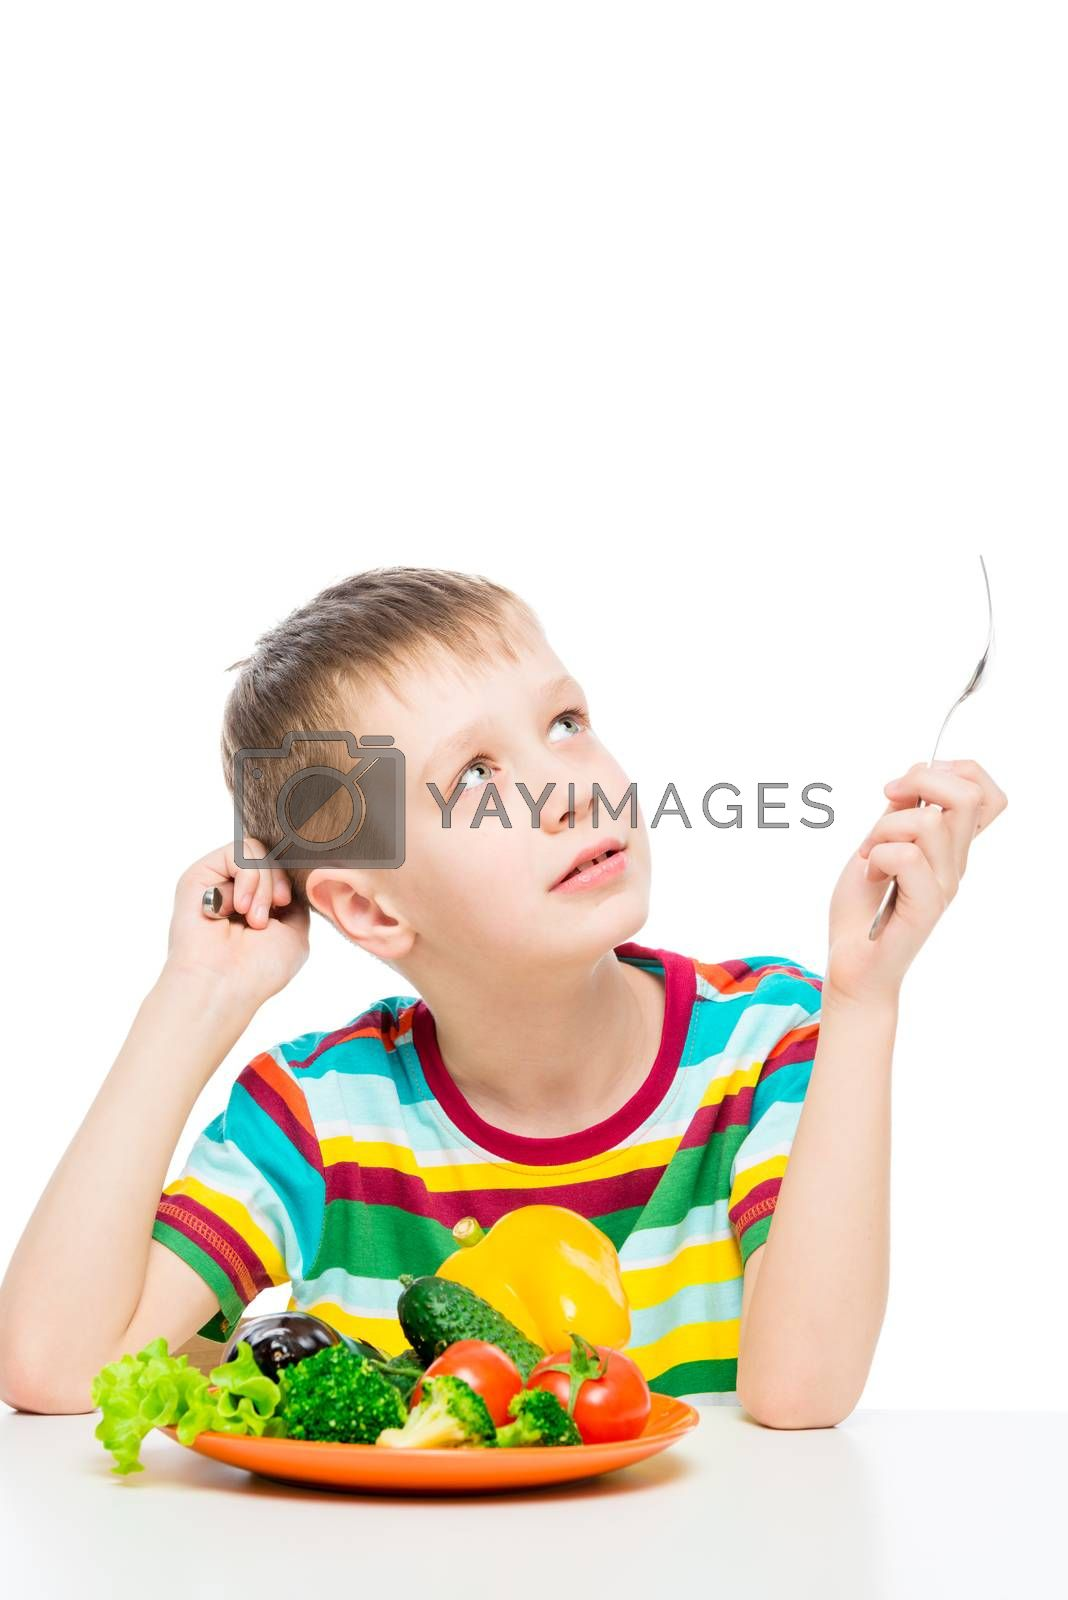 portrait of a boy at the table with a plate of vegetables for lunch, isolated on white background